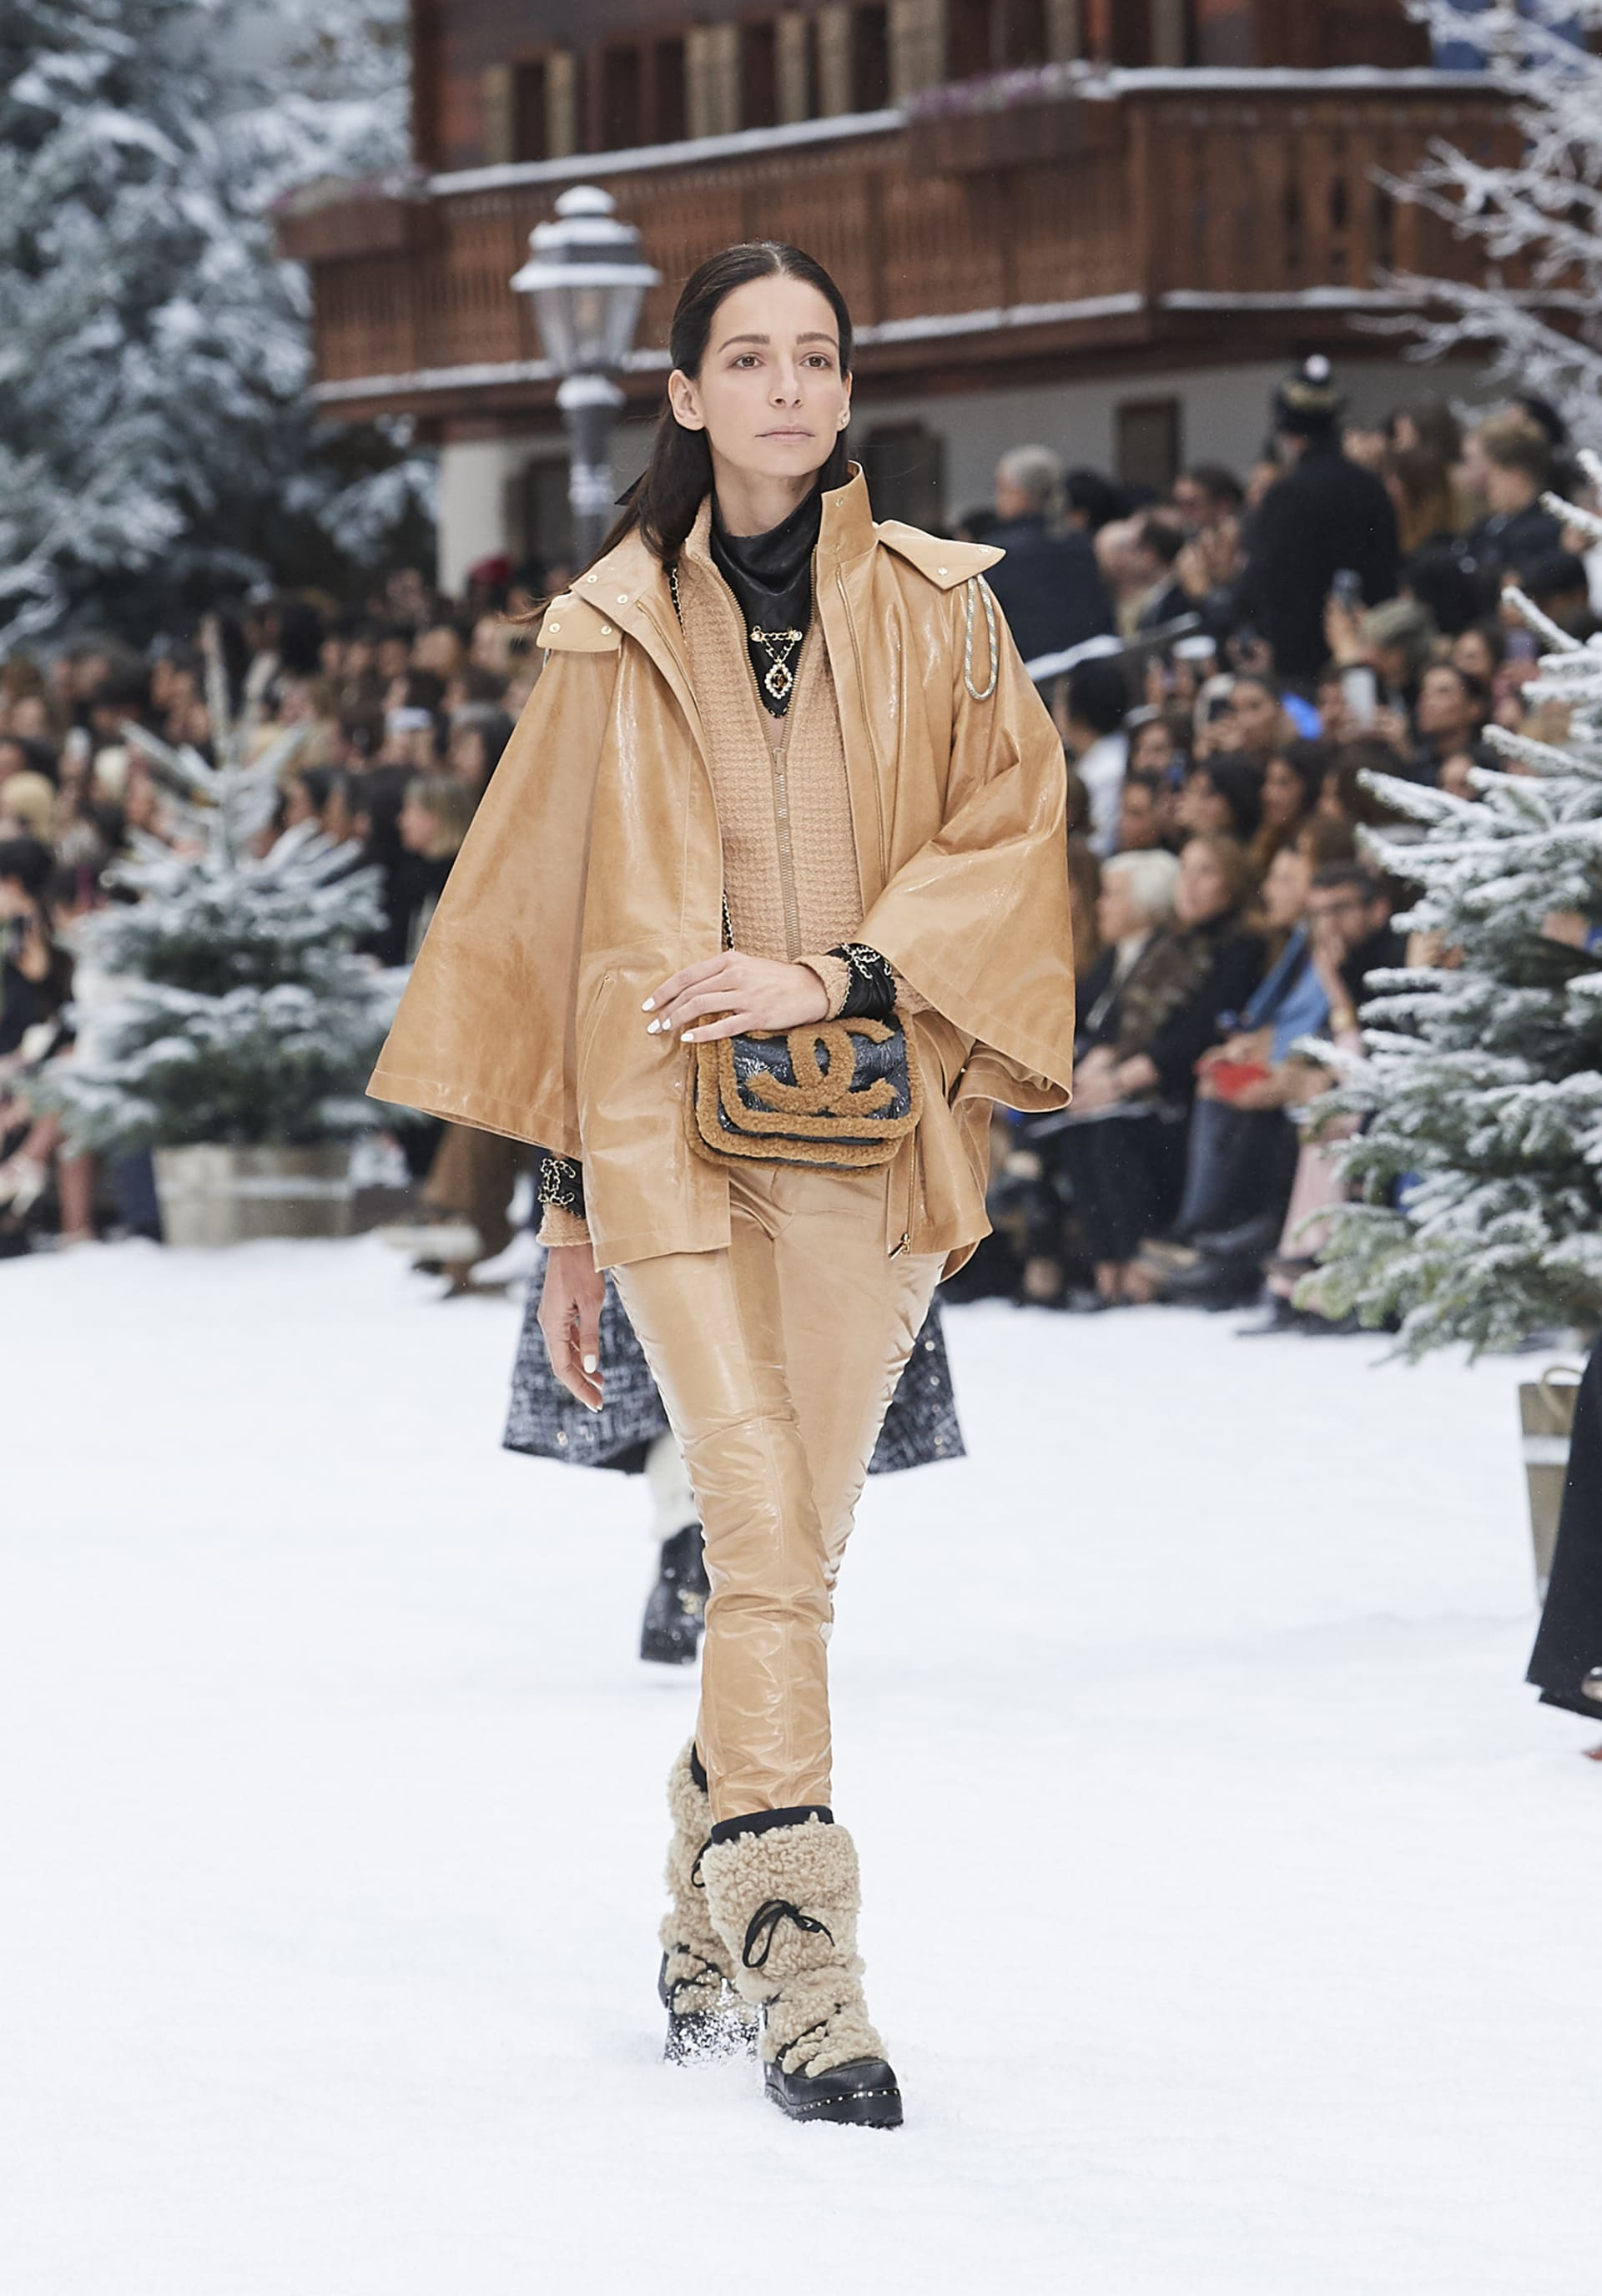 View 1 - Look 36 - Fall-Winter 2019/20